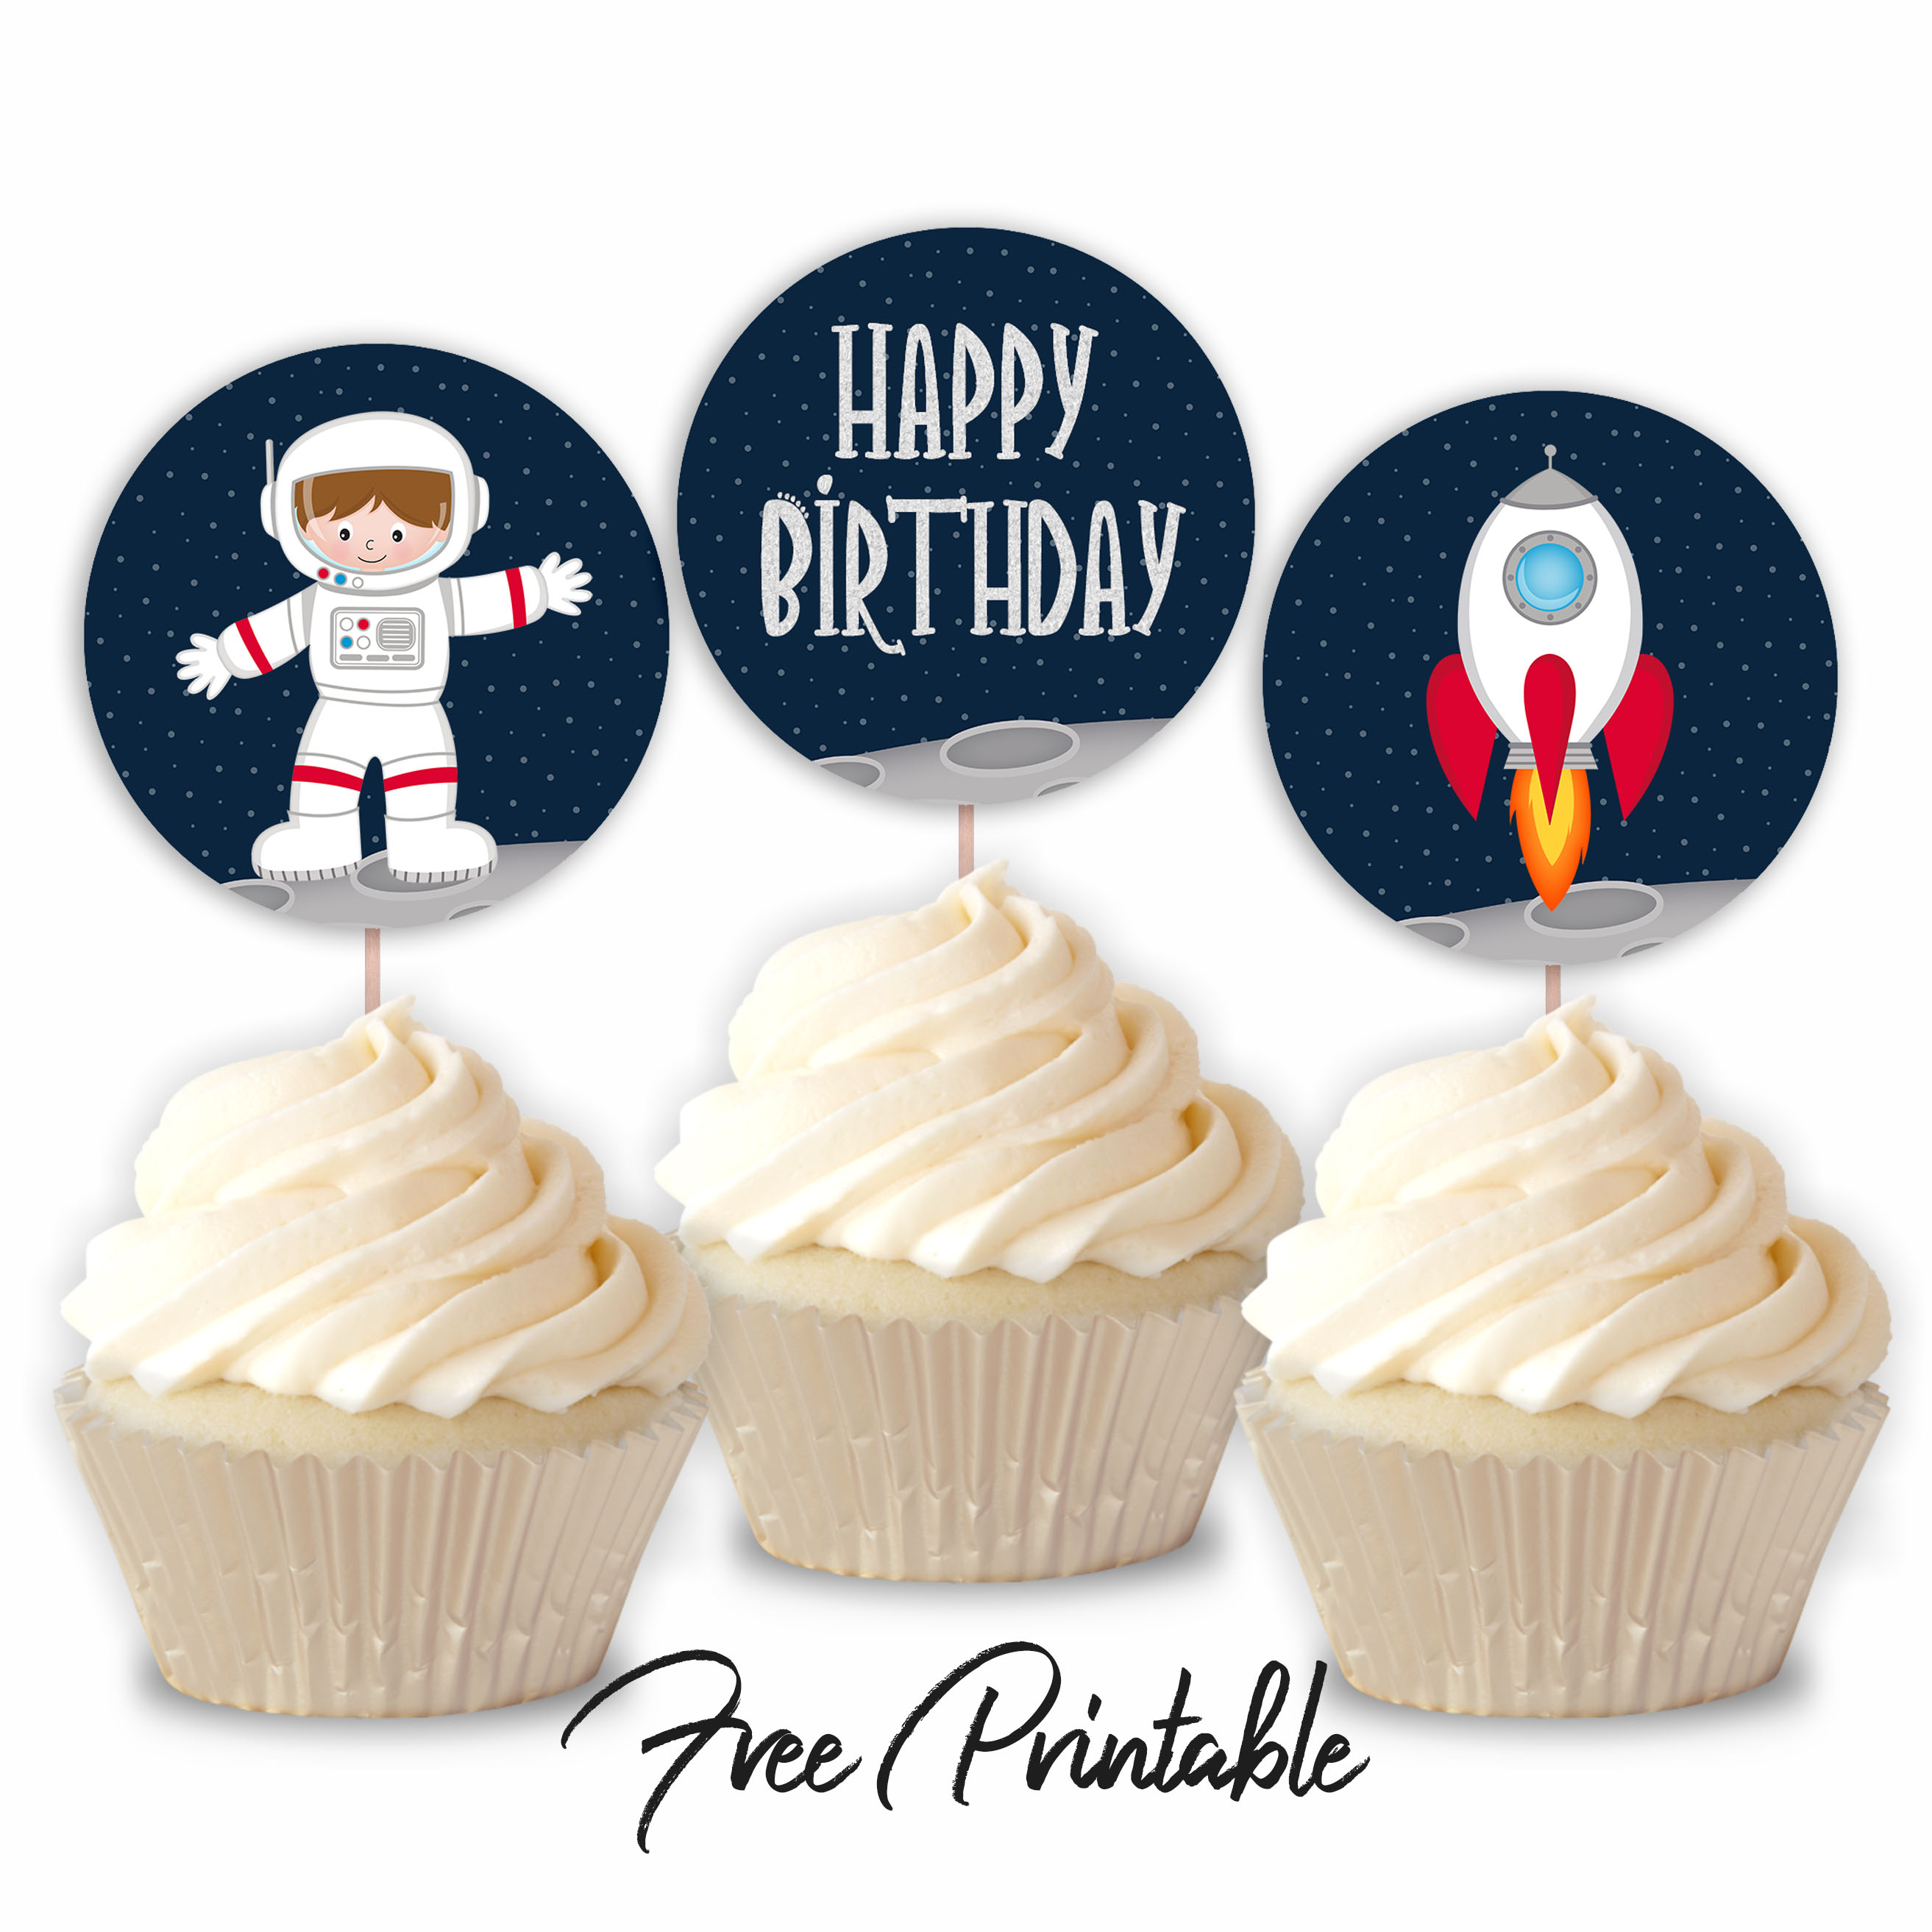 image about Happy Birthday Cake Topper Printable named Outer Spot Astronaut Spaceship Printable Pleased Birthday